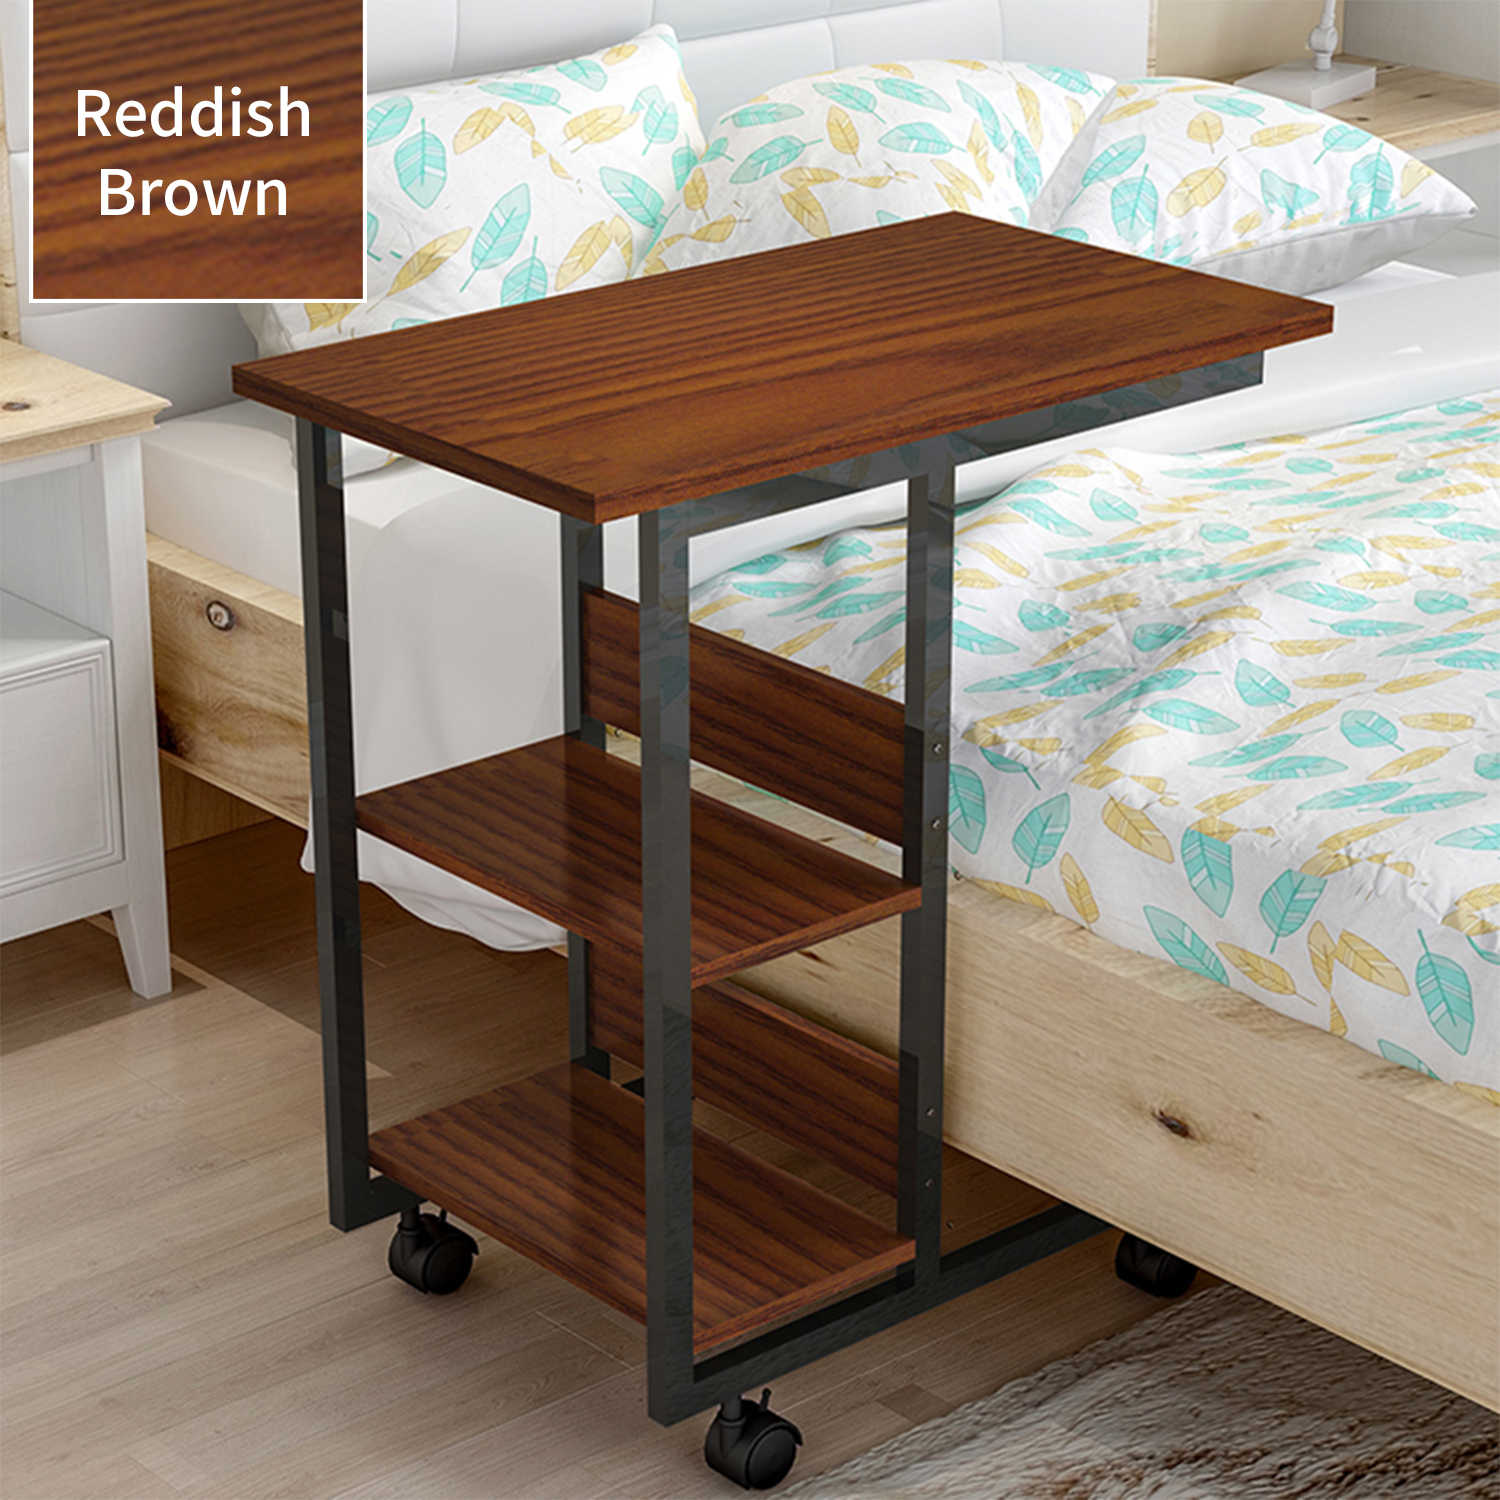 3 Tier Storage Rack Simple Moveable Coffee Side Table Tray For Sofa Bed Couch C Shaped Table Desk Rolling Casters With Brakes End Tables Aliexpress